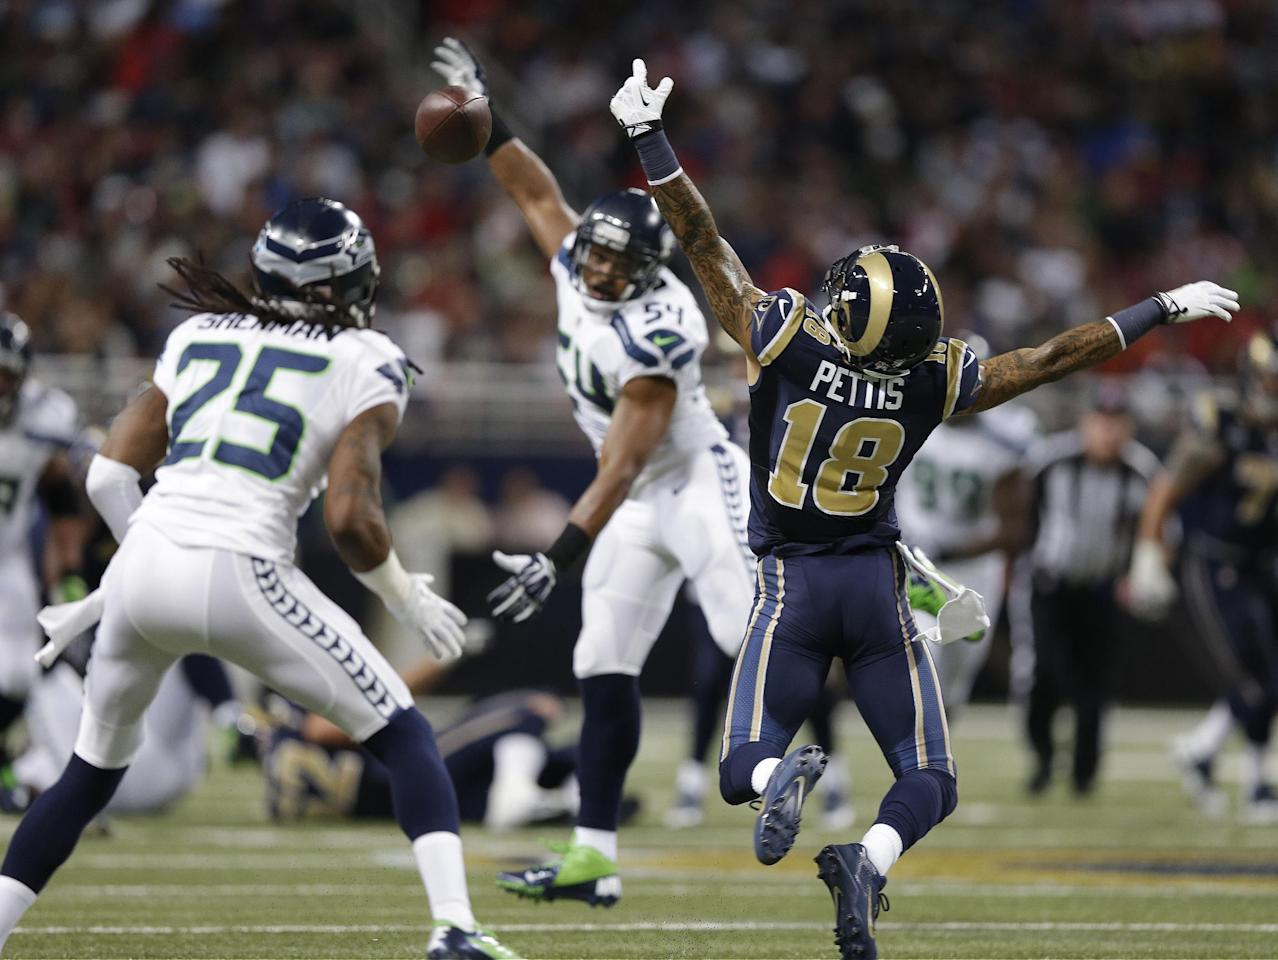 St. Louis Rams wide receiver Austin Pettis (18) cannot make a catch during the first half of an NFL football game against the Seattle Seahawks, Monday, Oct. 28, 2013, in St. Louis. Seattle Seahawks cornerback Richard Sherman (25) made the interception on the play. (AP Photo/Michael Conroy)